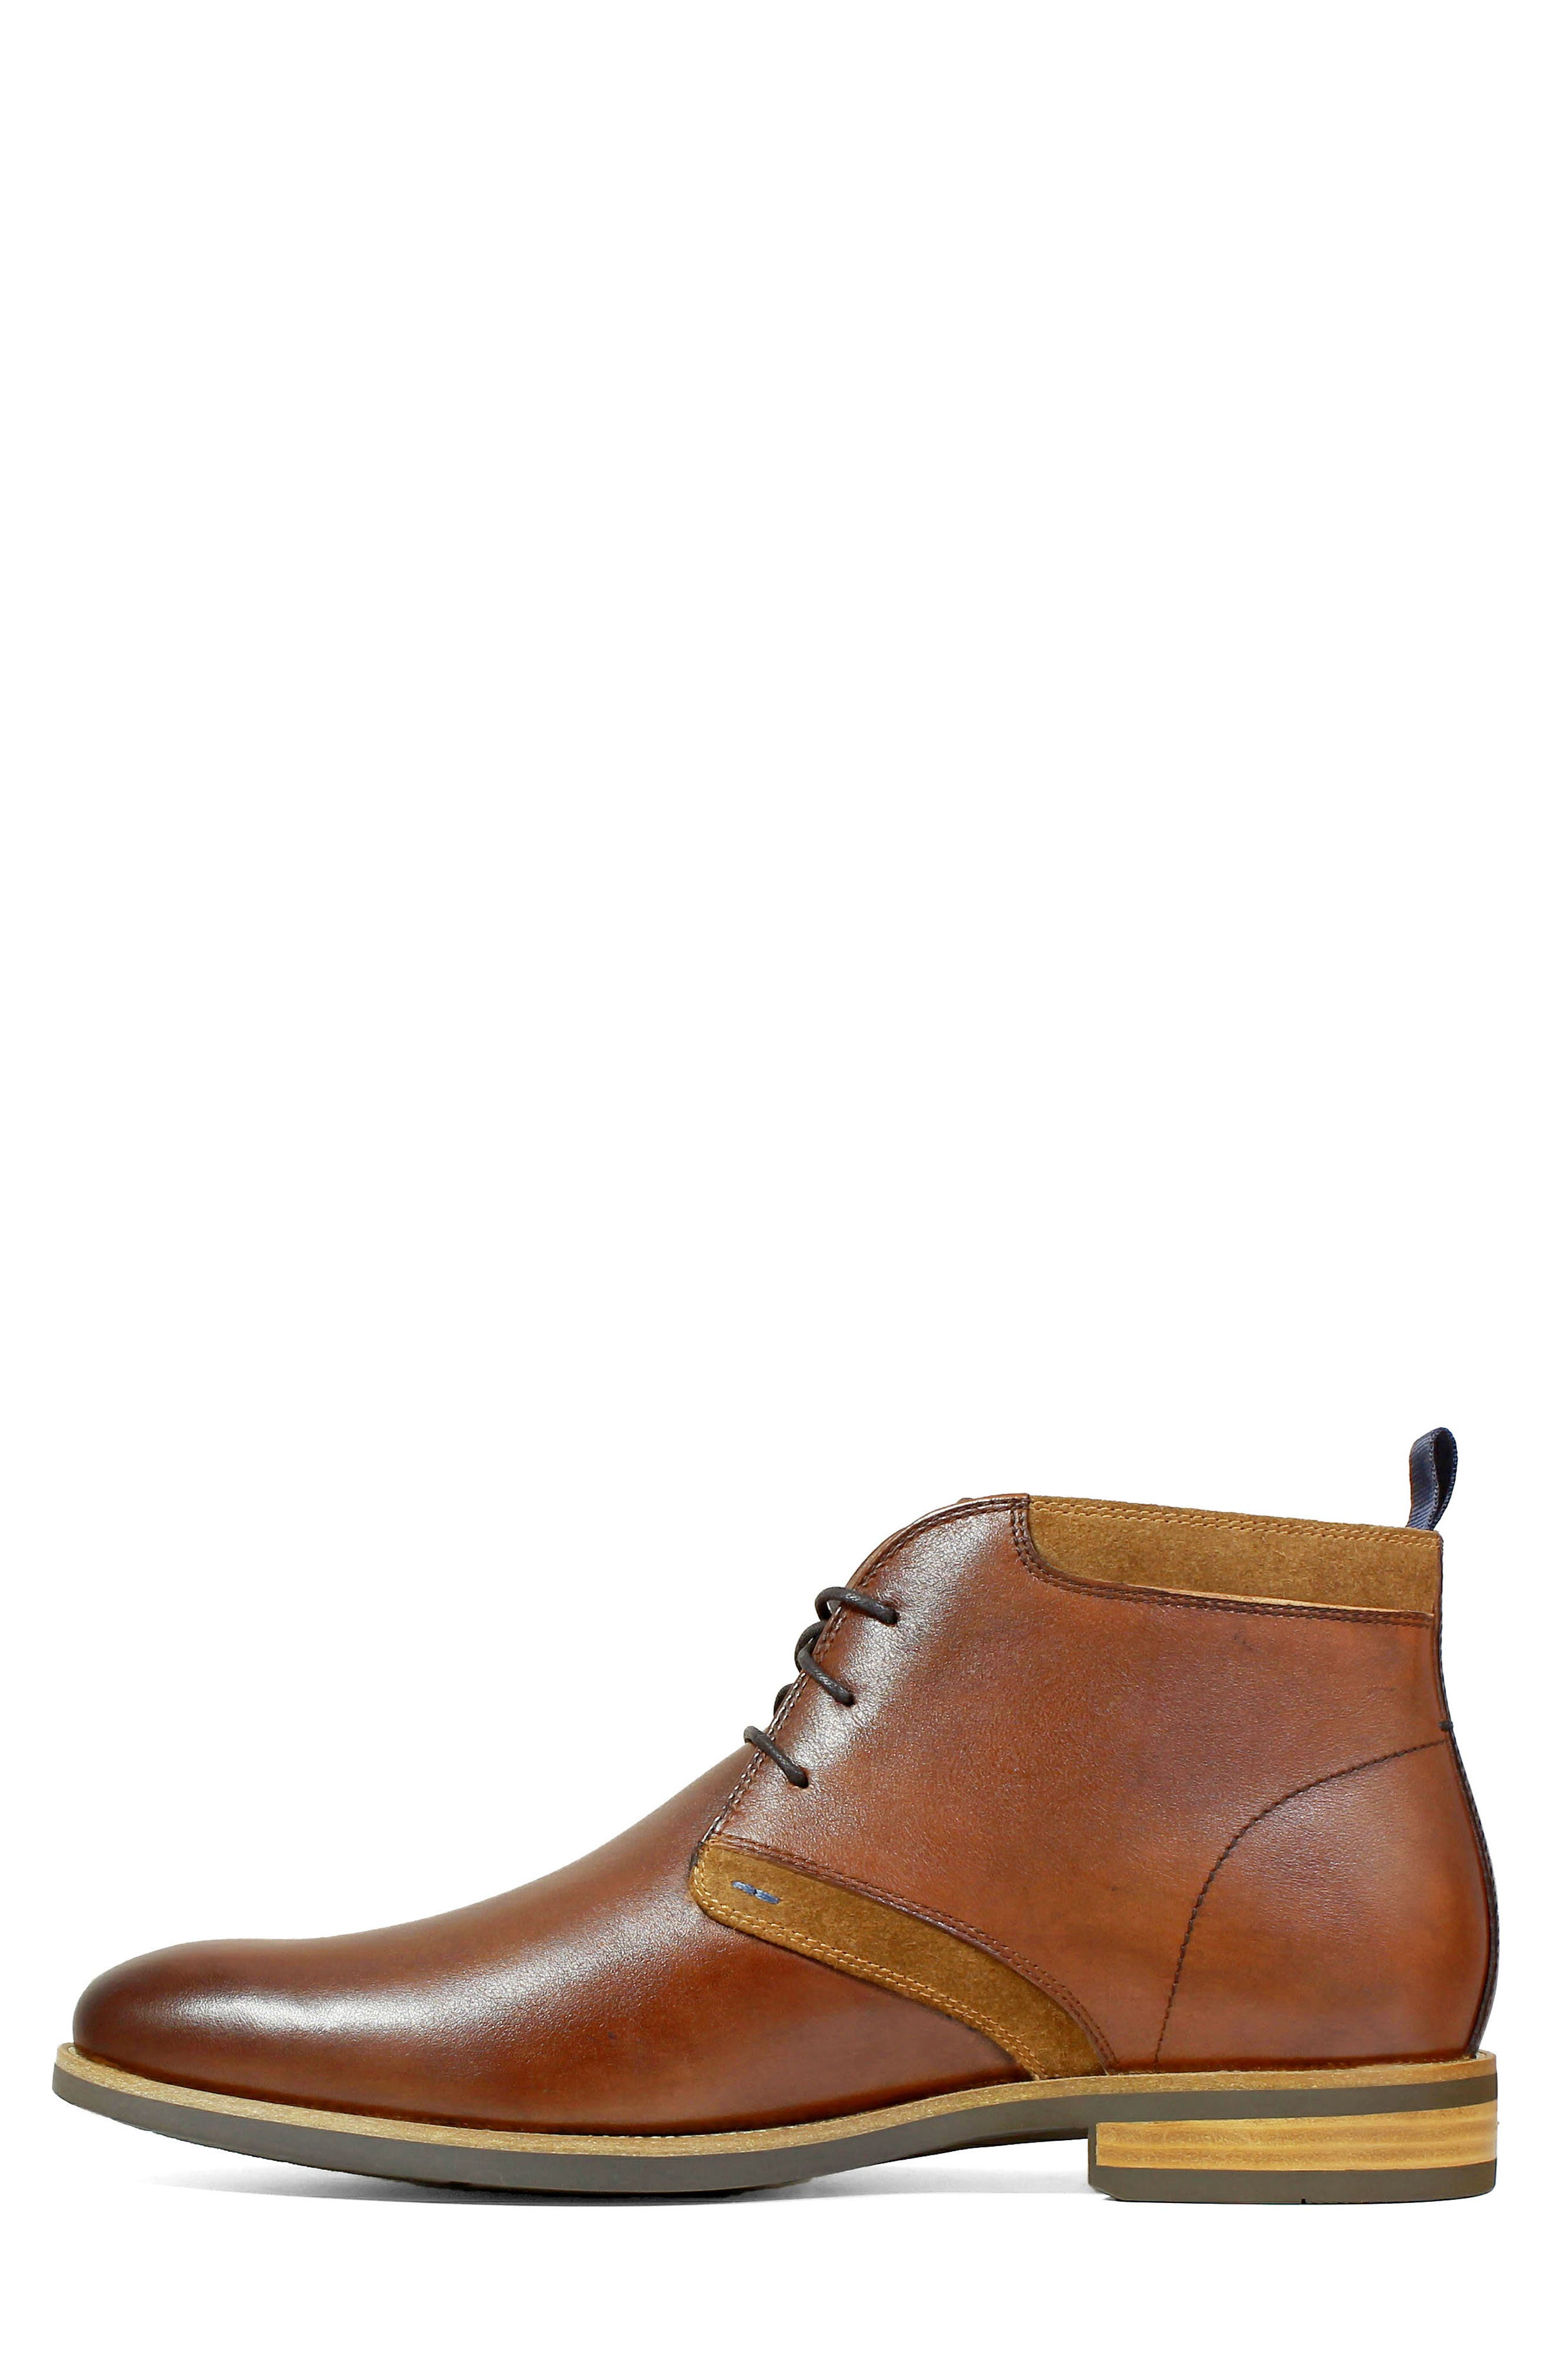 FLORSHEIM, Uptown Chukka Boot, Alternate thumbnail 8, color, COGNAC LEATHER